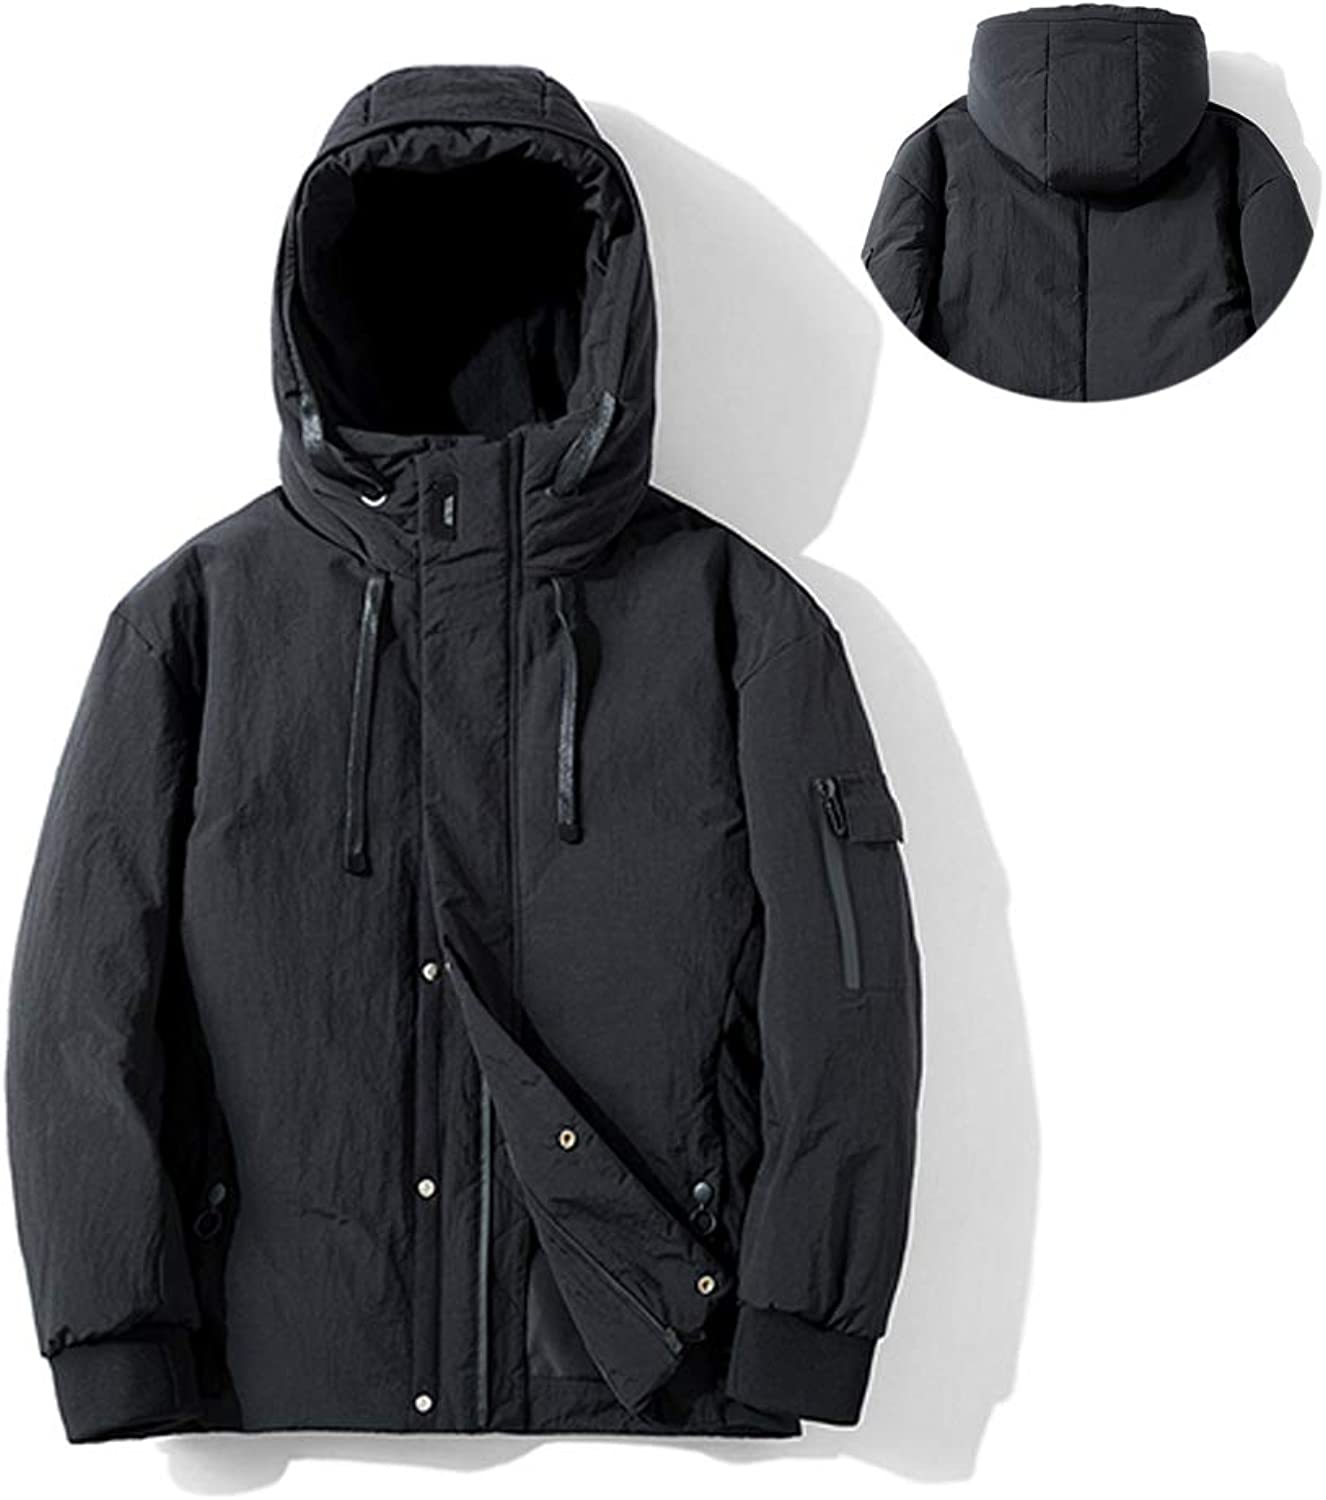 Men's Hooded Winter Jacket Waterproof and Windproof Wear Suitable for Casual Everyday Wear Outdoor Travel